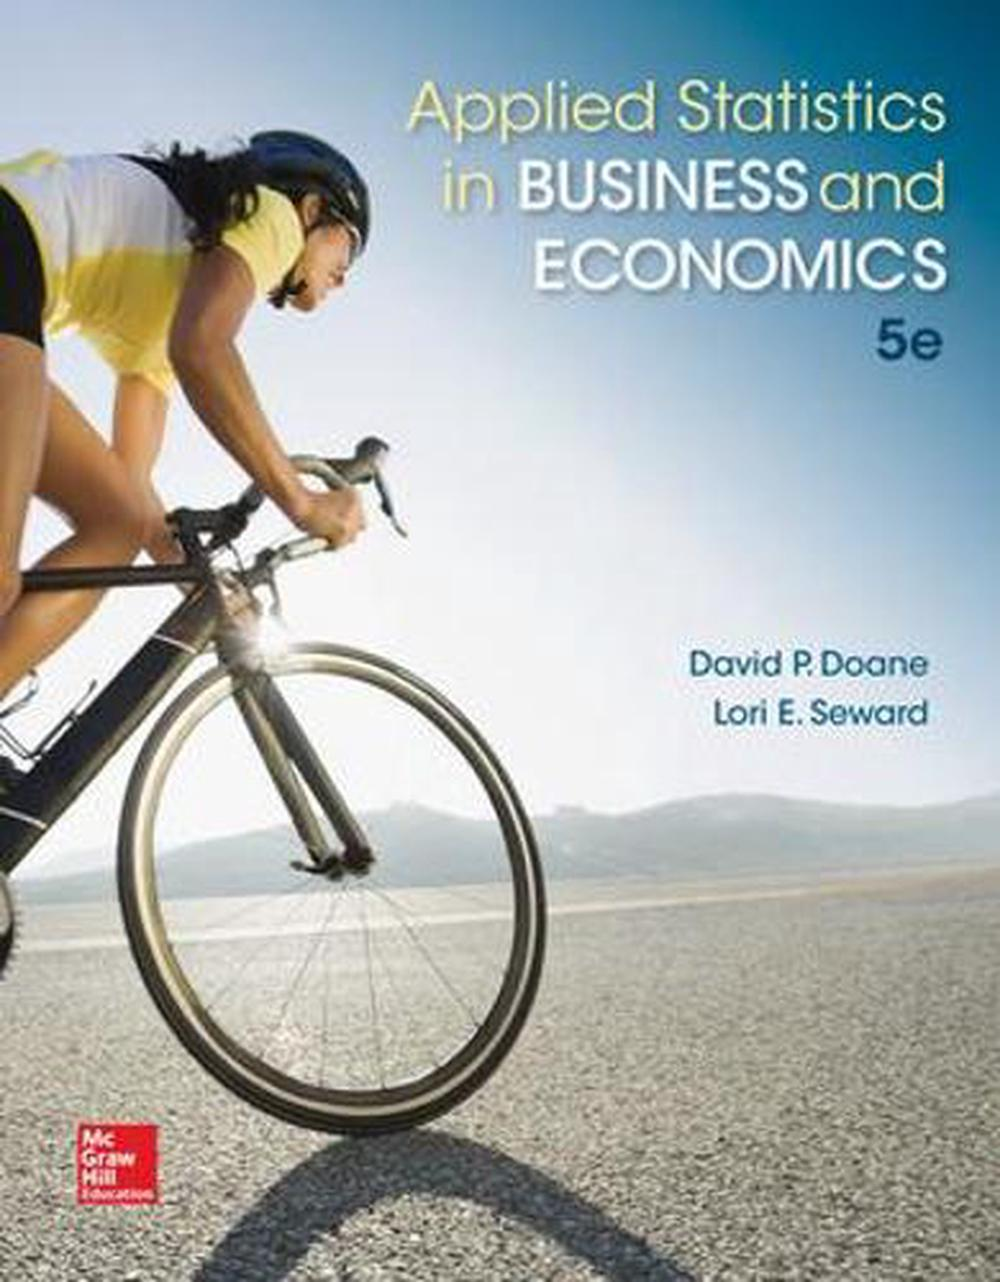 Applied Statistics in Business and Economics, 5th Edition